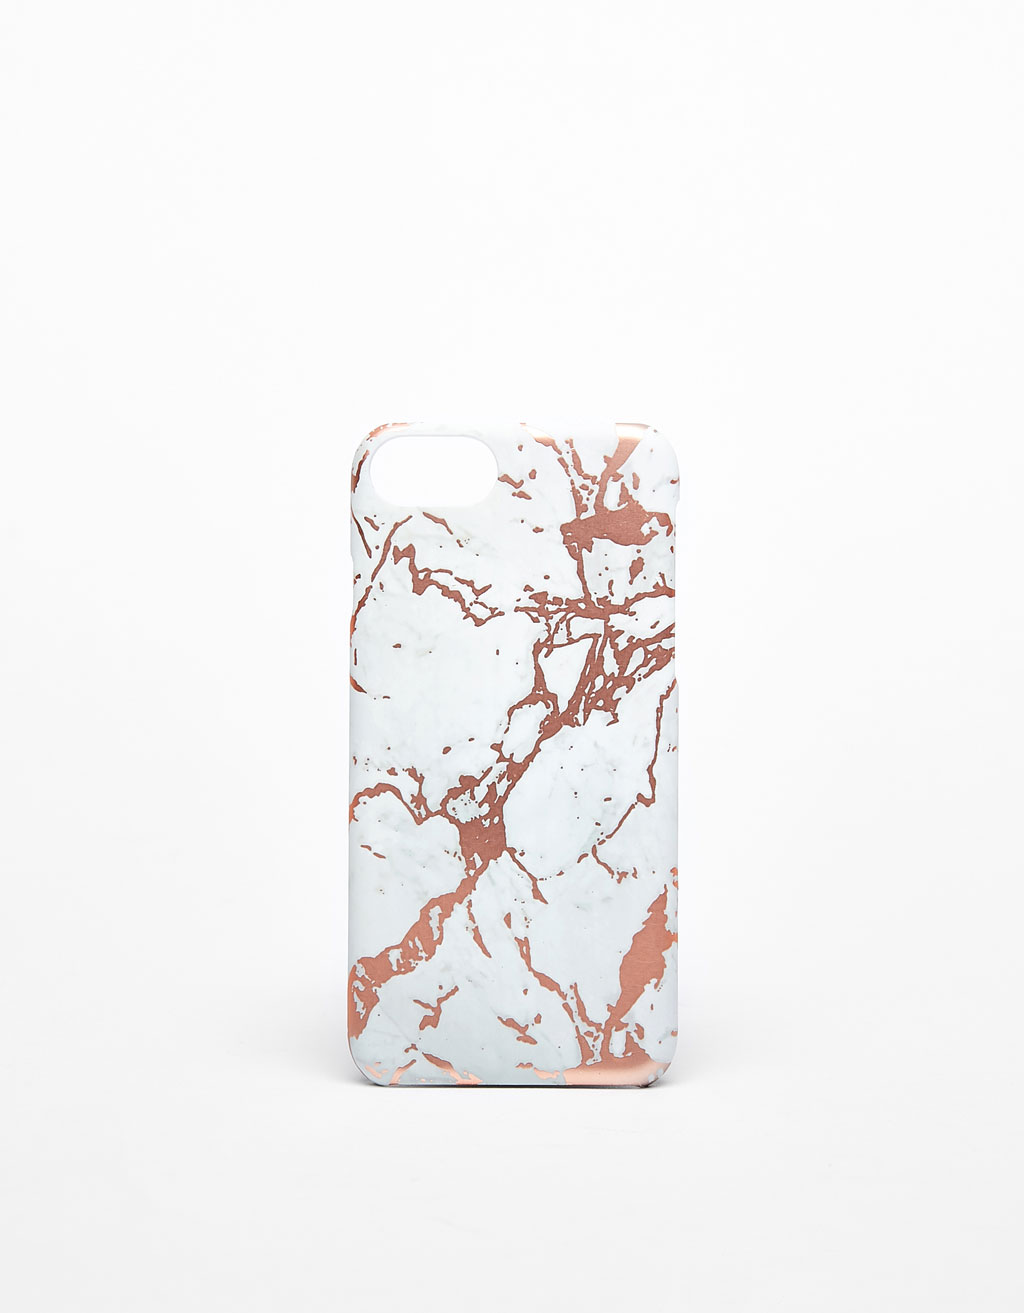 Marble design iPhone 6/6s/7/8 case